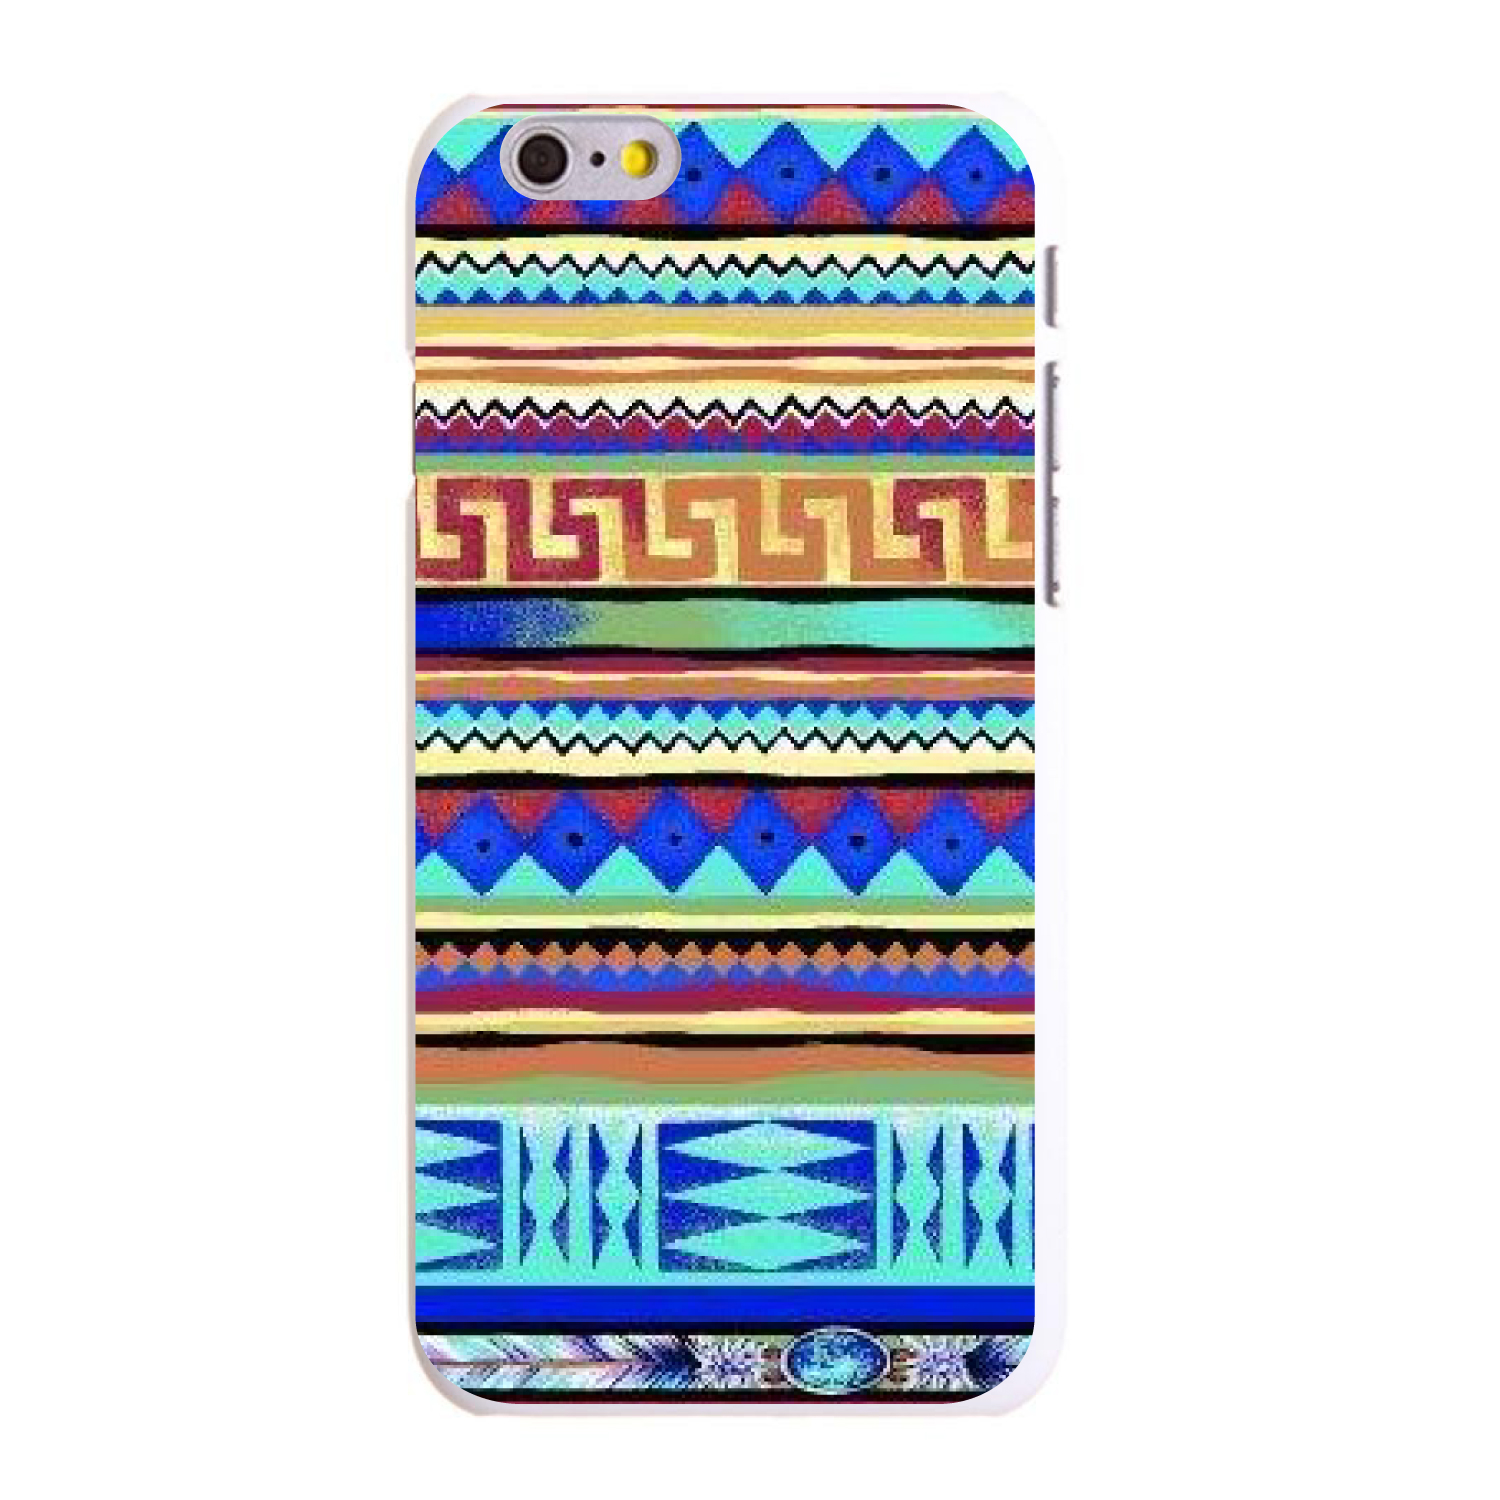 """CUSTOM White Hard Plastic Snap-On Case for Apple iPhone 6 / 6S (4.7"""" Screen) - Blue Red Yellow Tribal Print"""